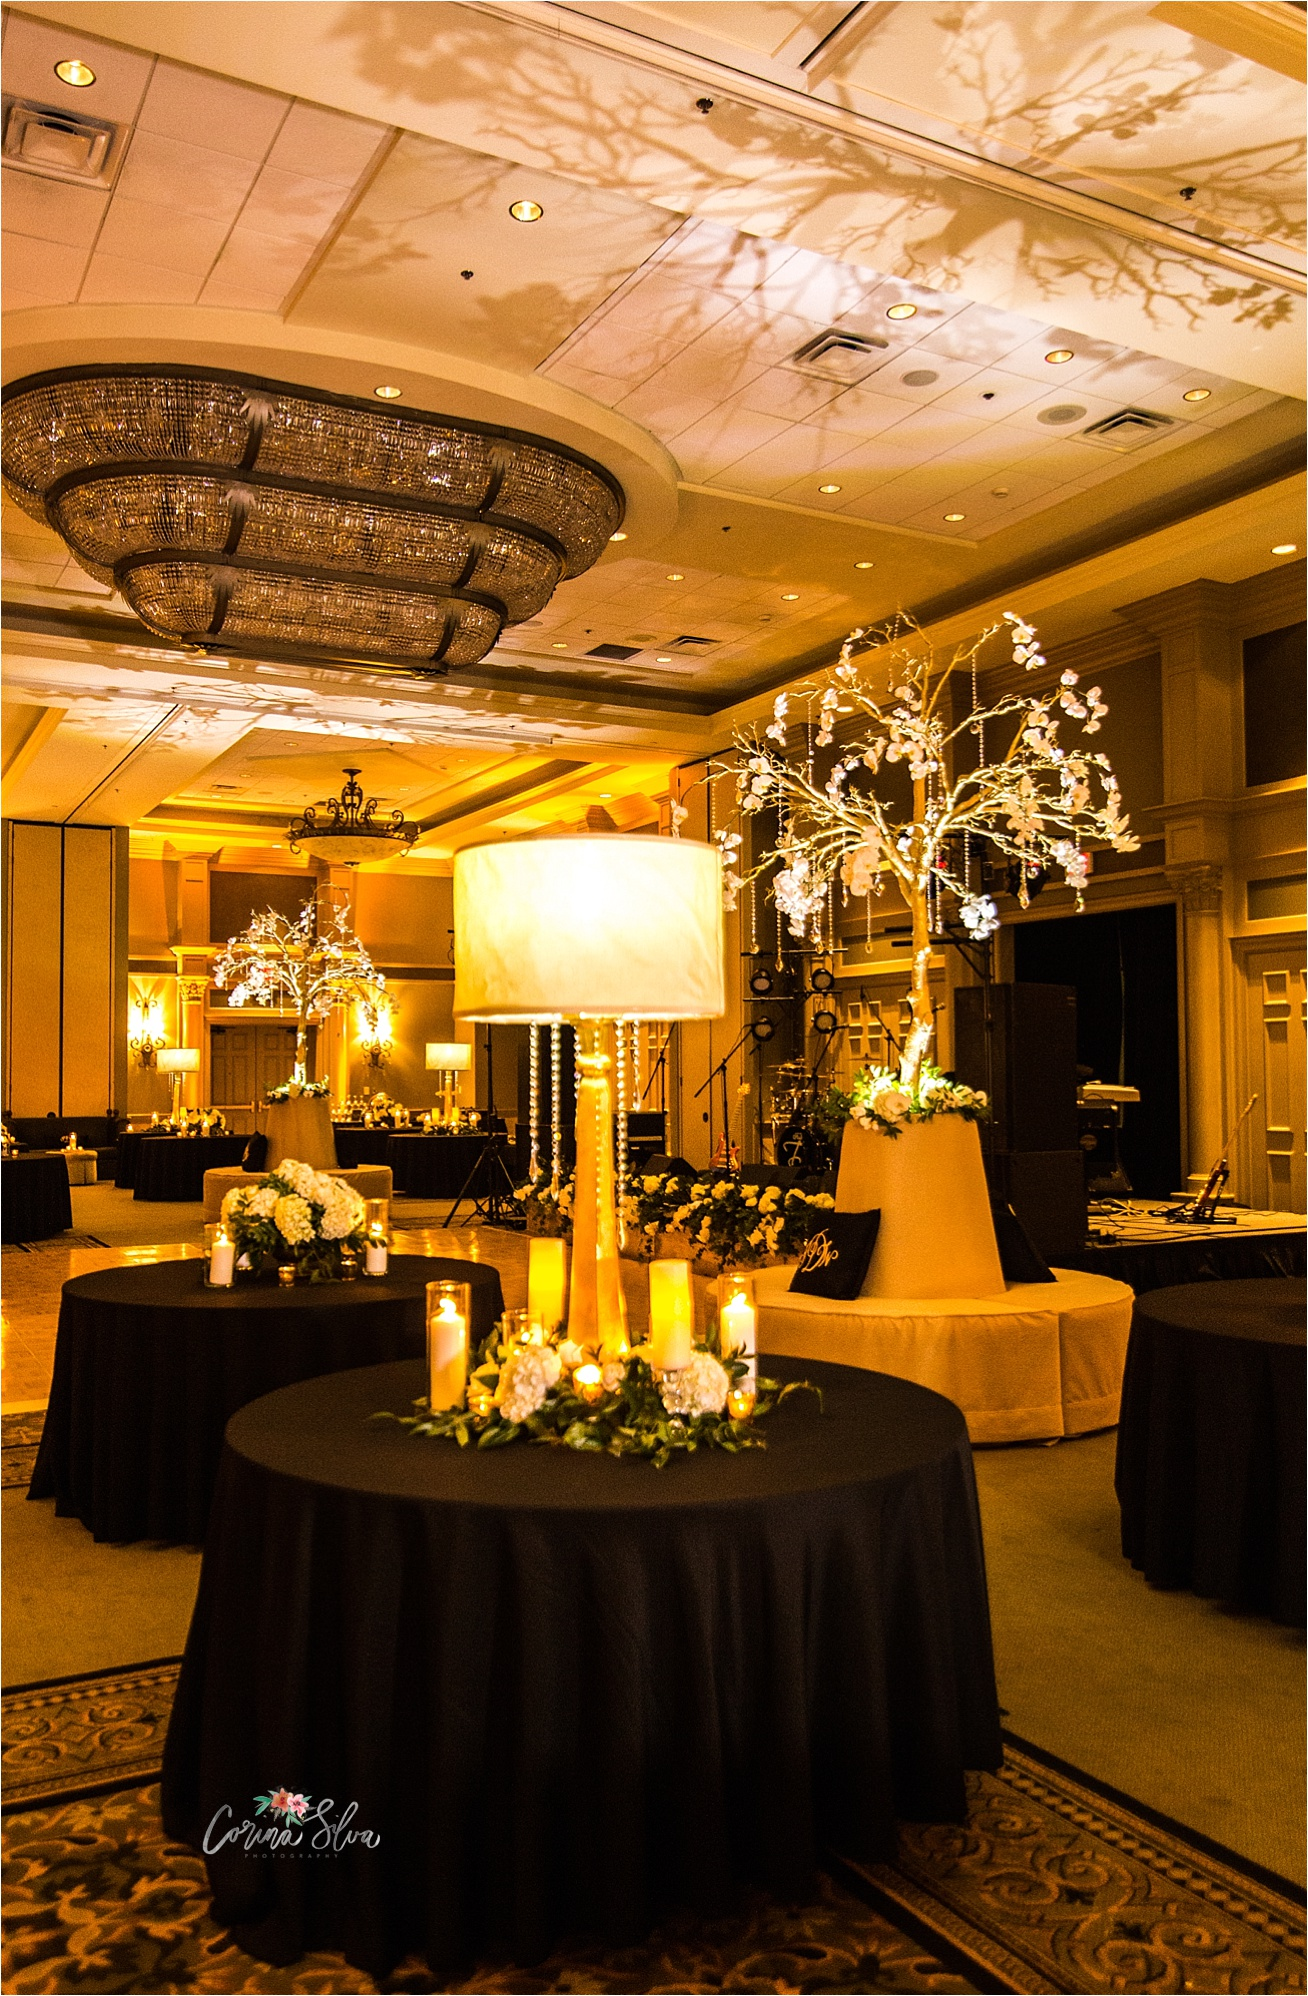 RSG-Event-and-Designs-luxury-wedding-decor-photos, Corina-Silva-Studios_0037.jpg